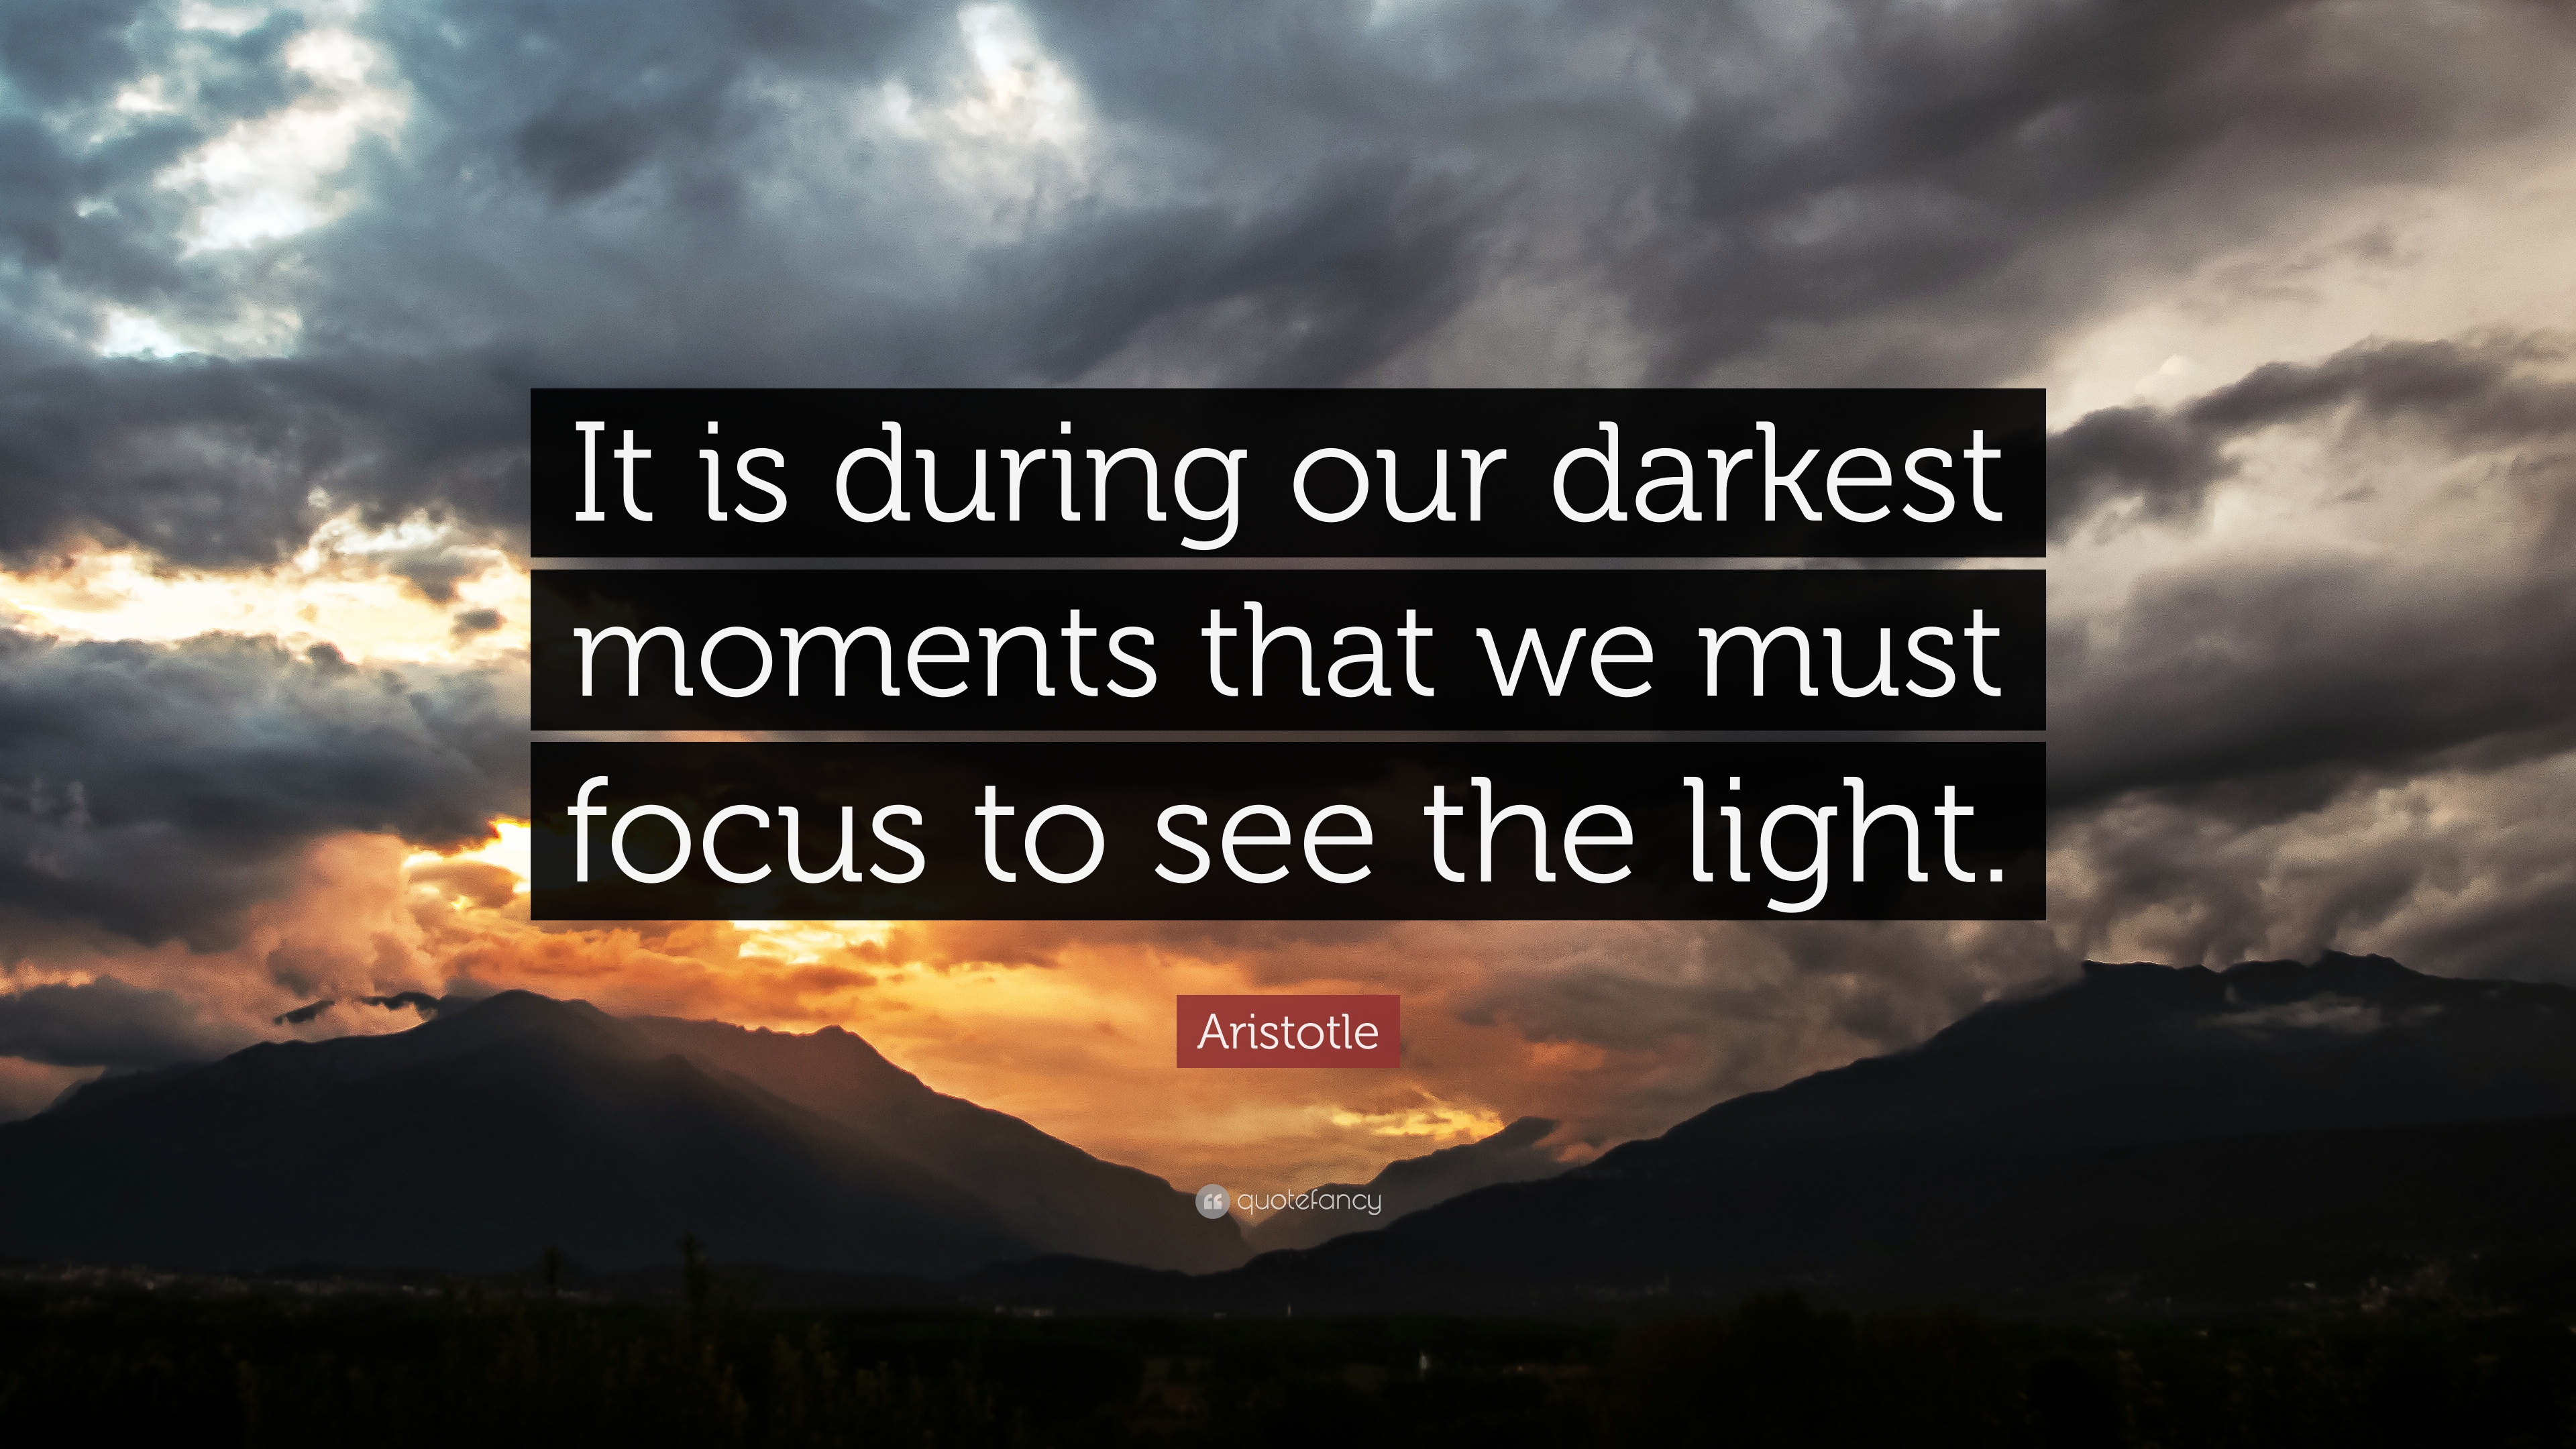 It Is during Our Darkest Moments That We Must